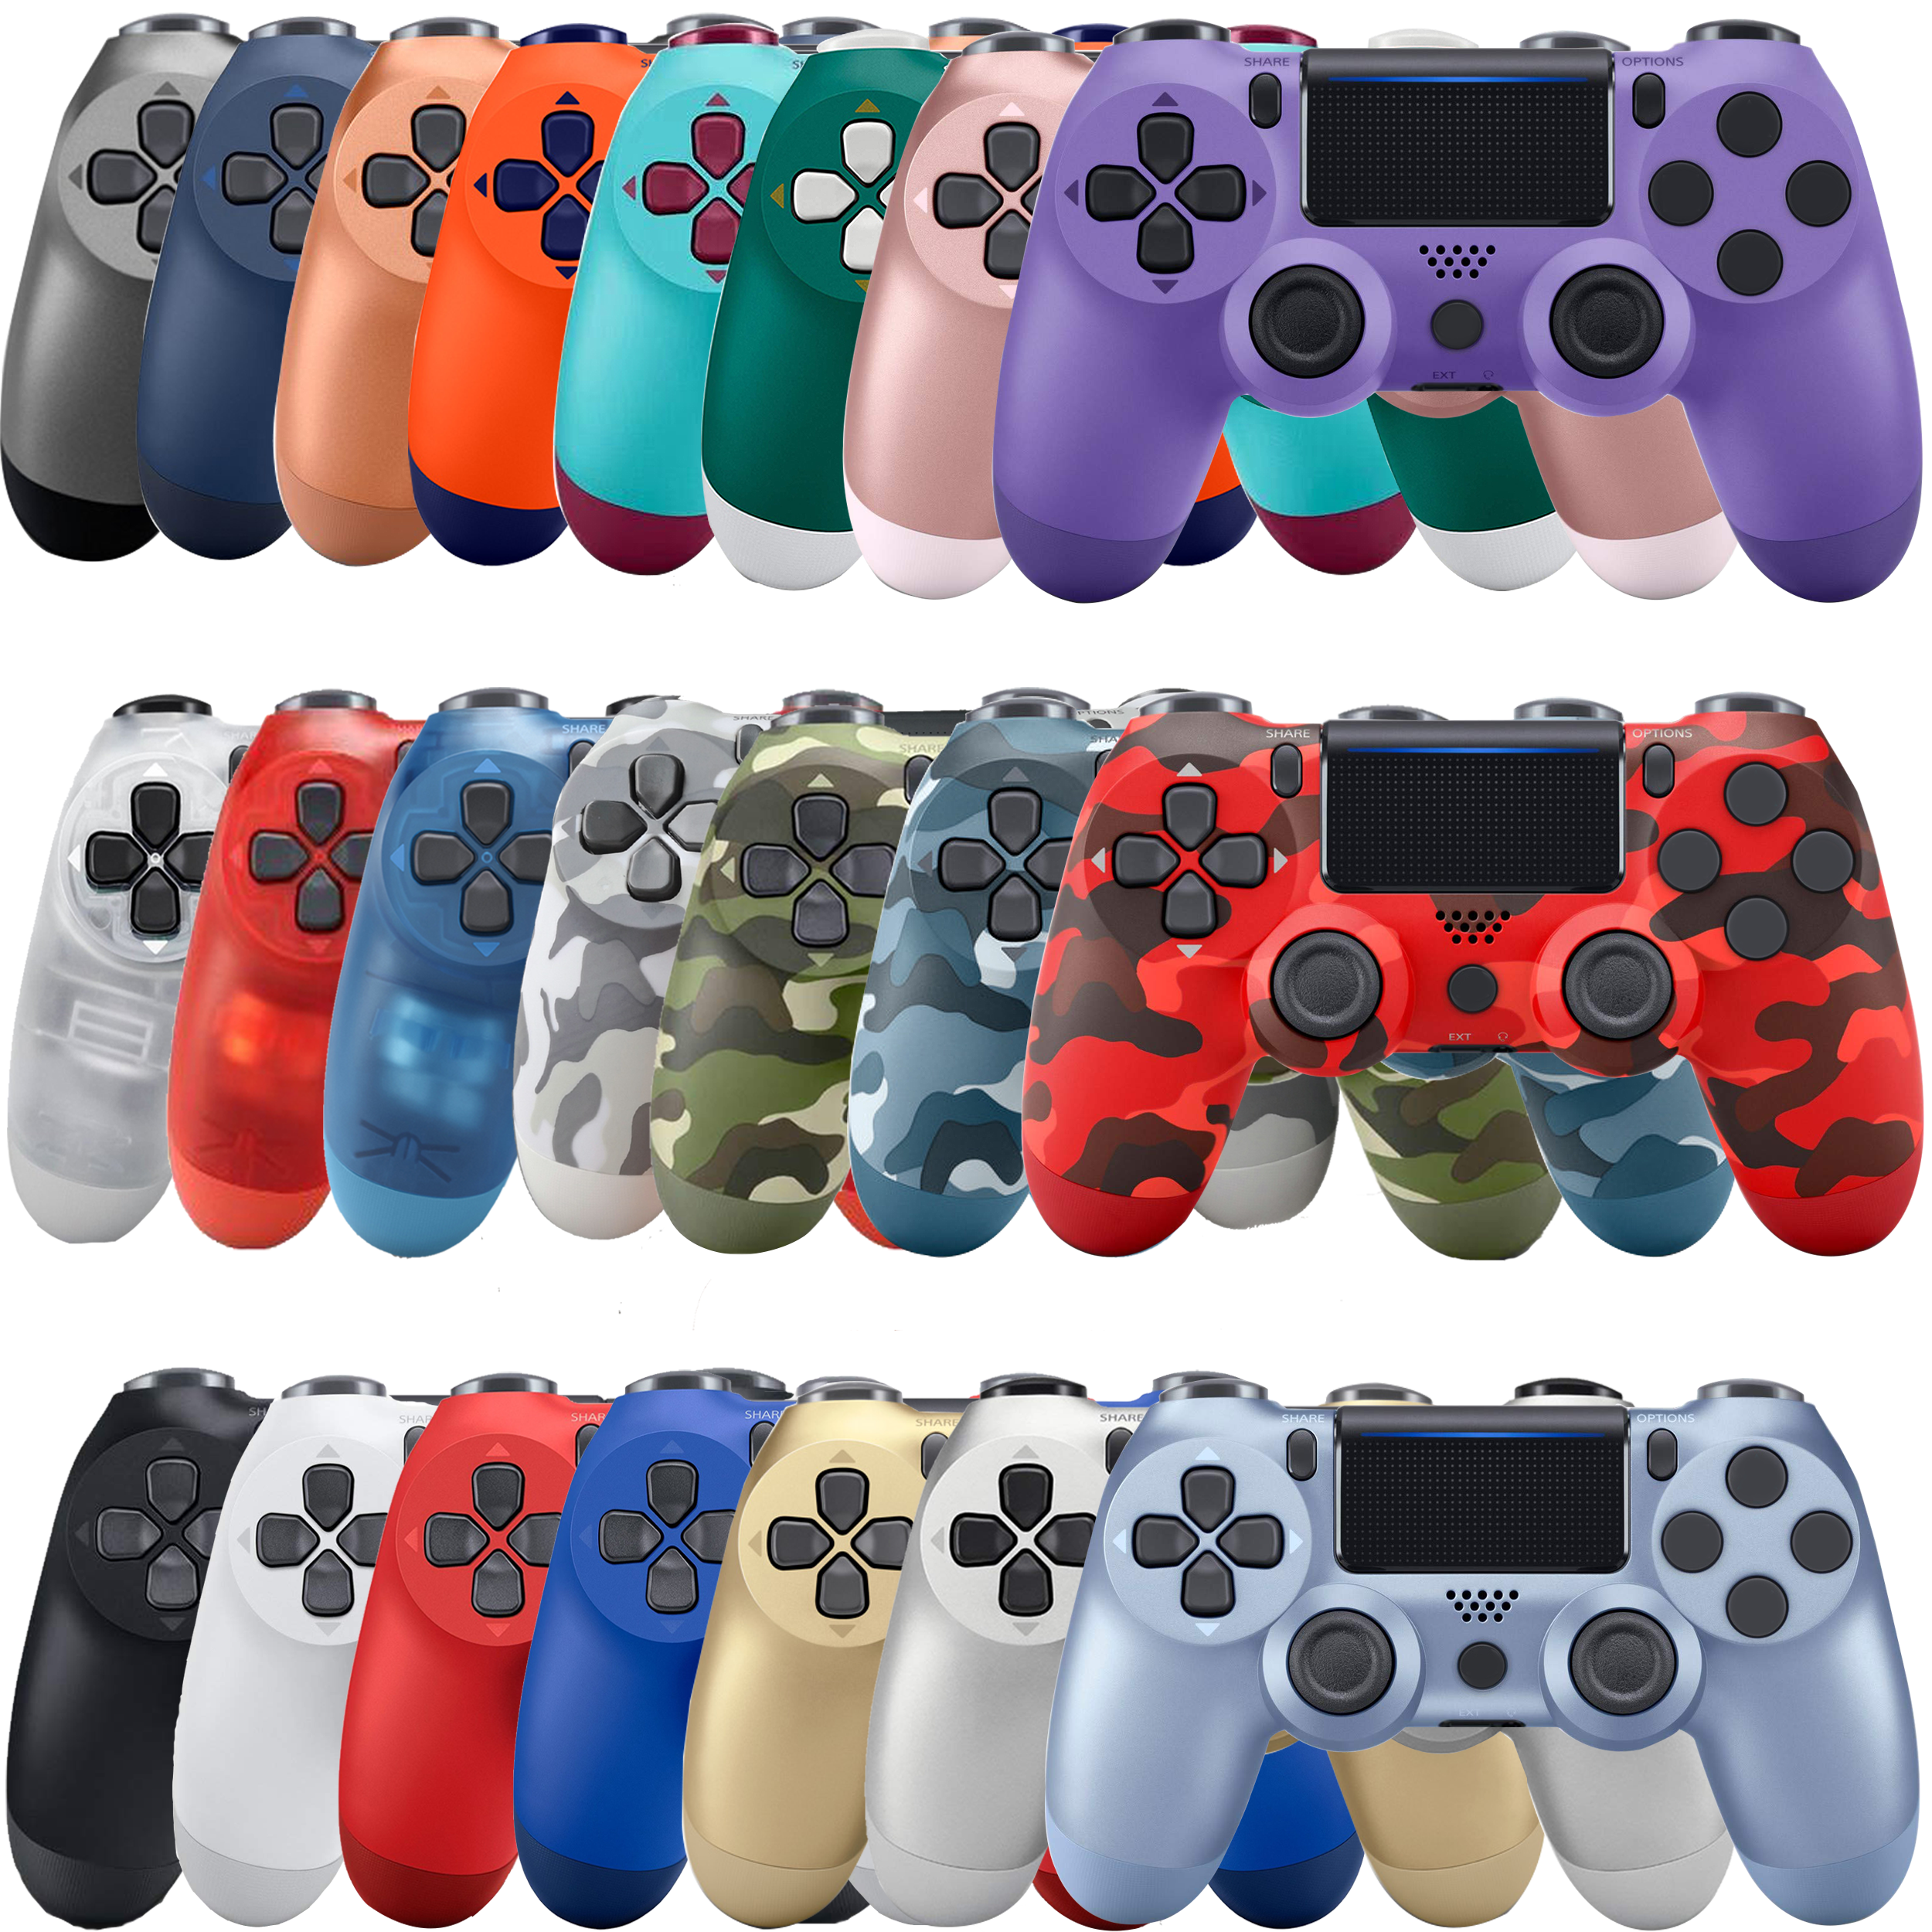 Controlador inalámbrico para ps4 pc Joypad controlador de juego Joystick usb ps4 wireless gamepad para ps4 V2